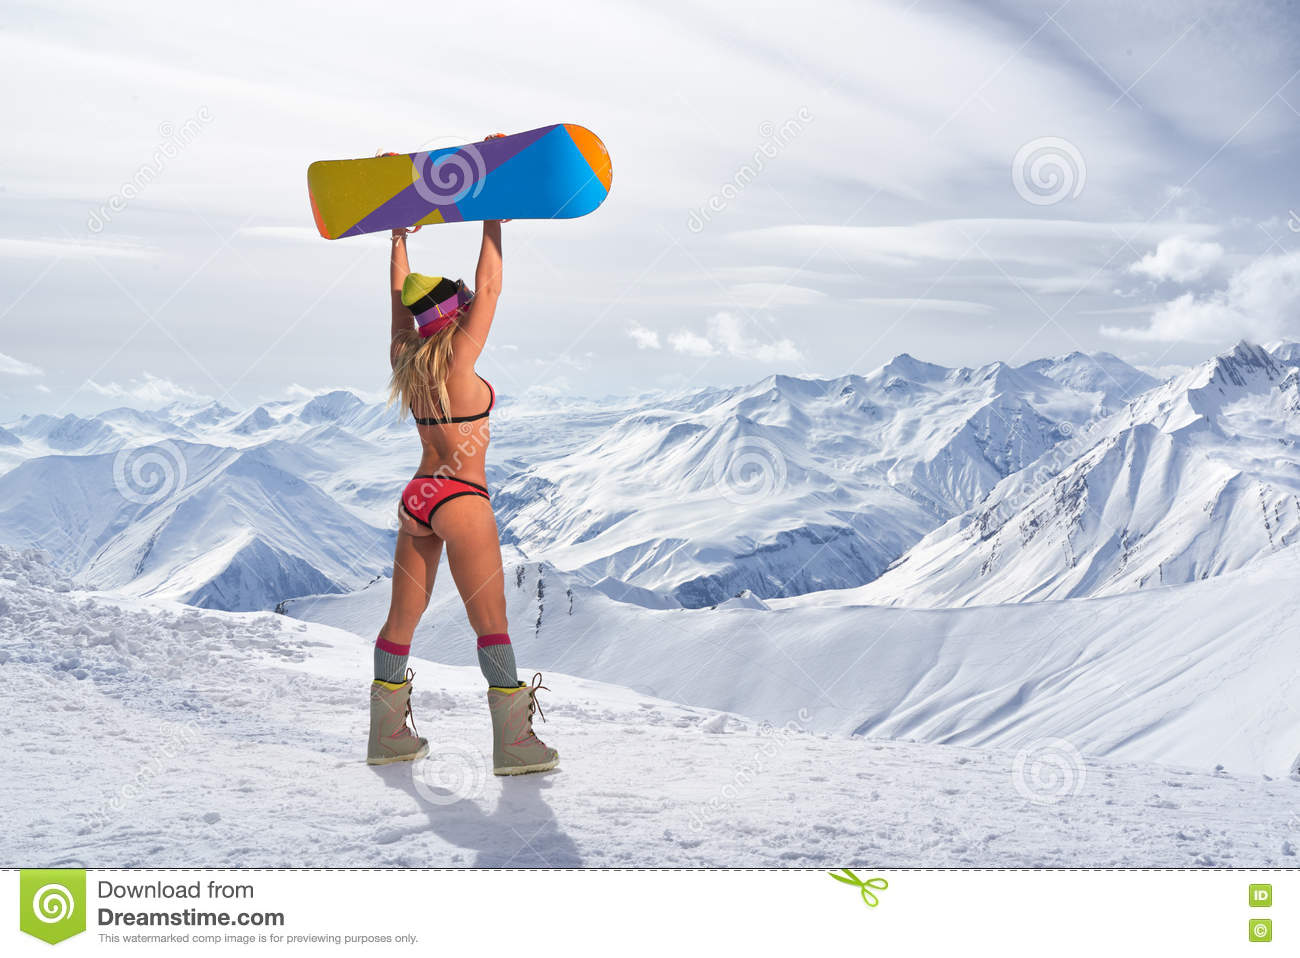 Snowboard Girl Wallpaper Images Wallpaper And Free Download